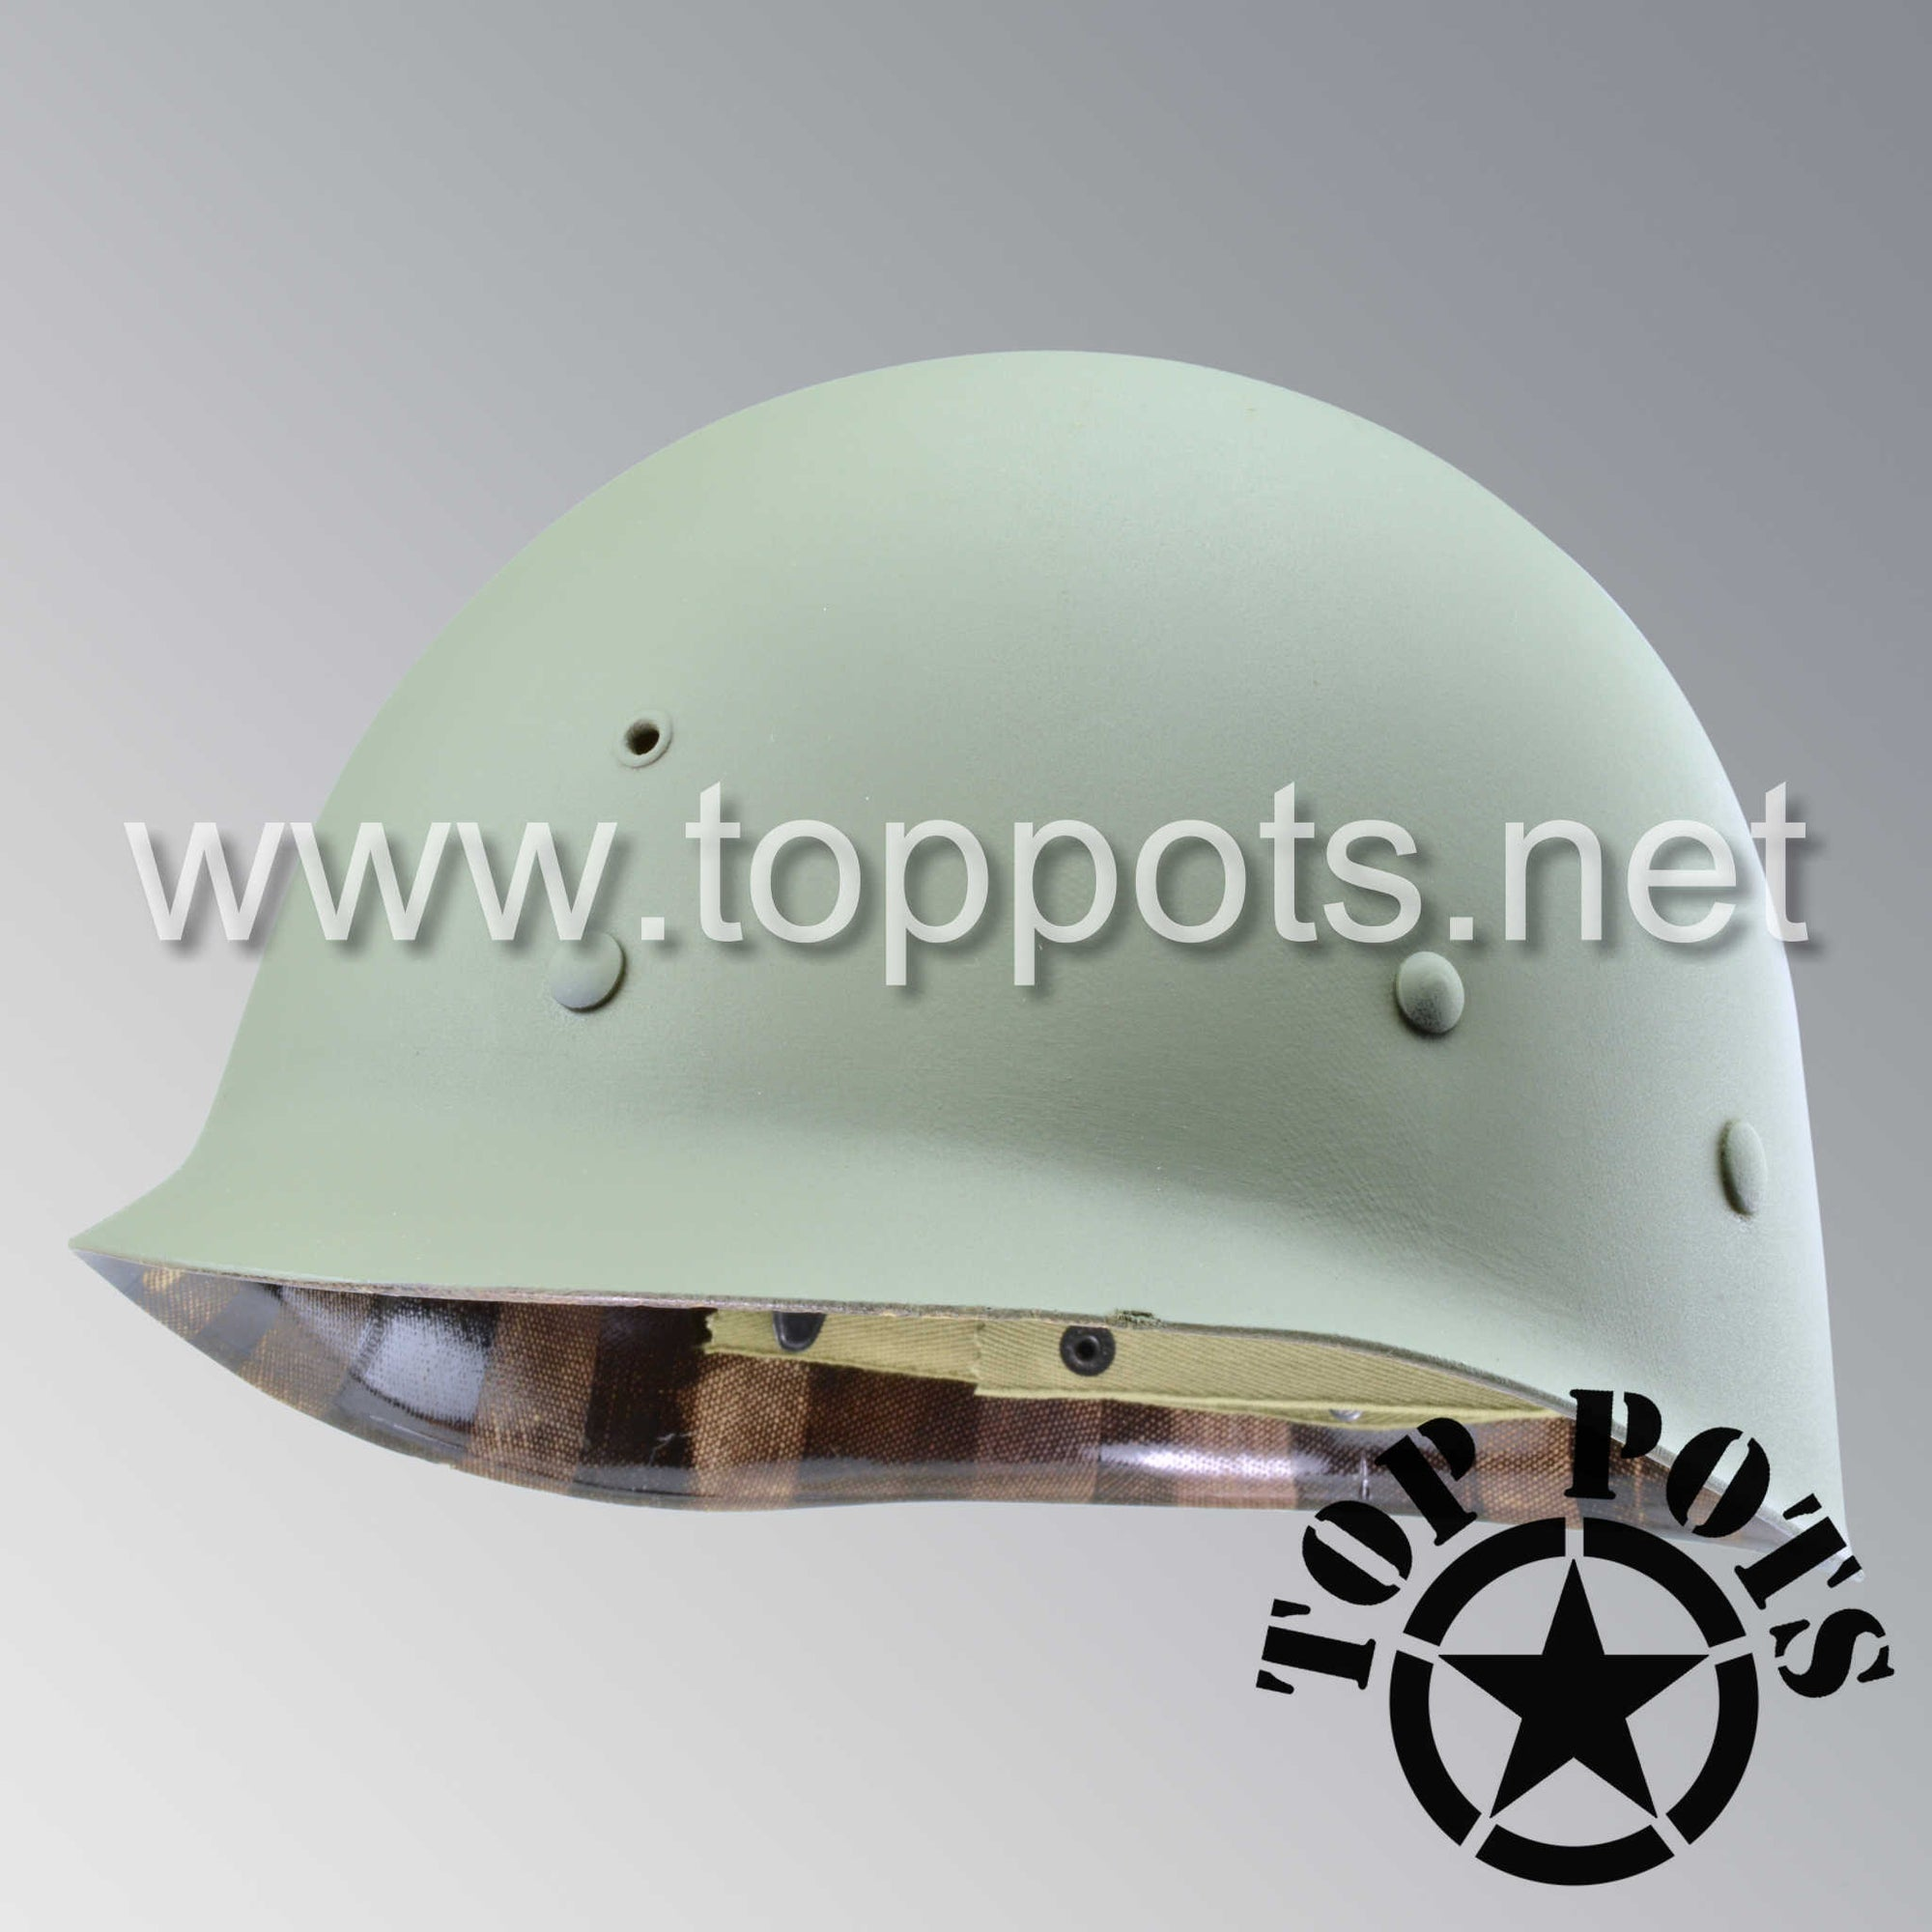 Image 1 of WWII US Army Restored Original M1 Infantry Helmet Liner with No Accessories